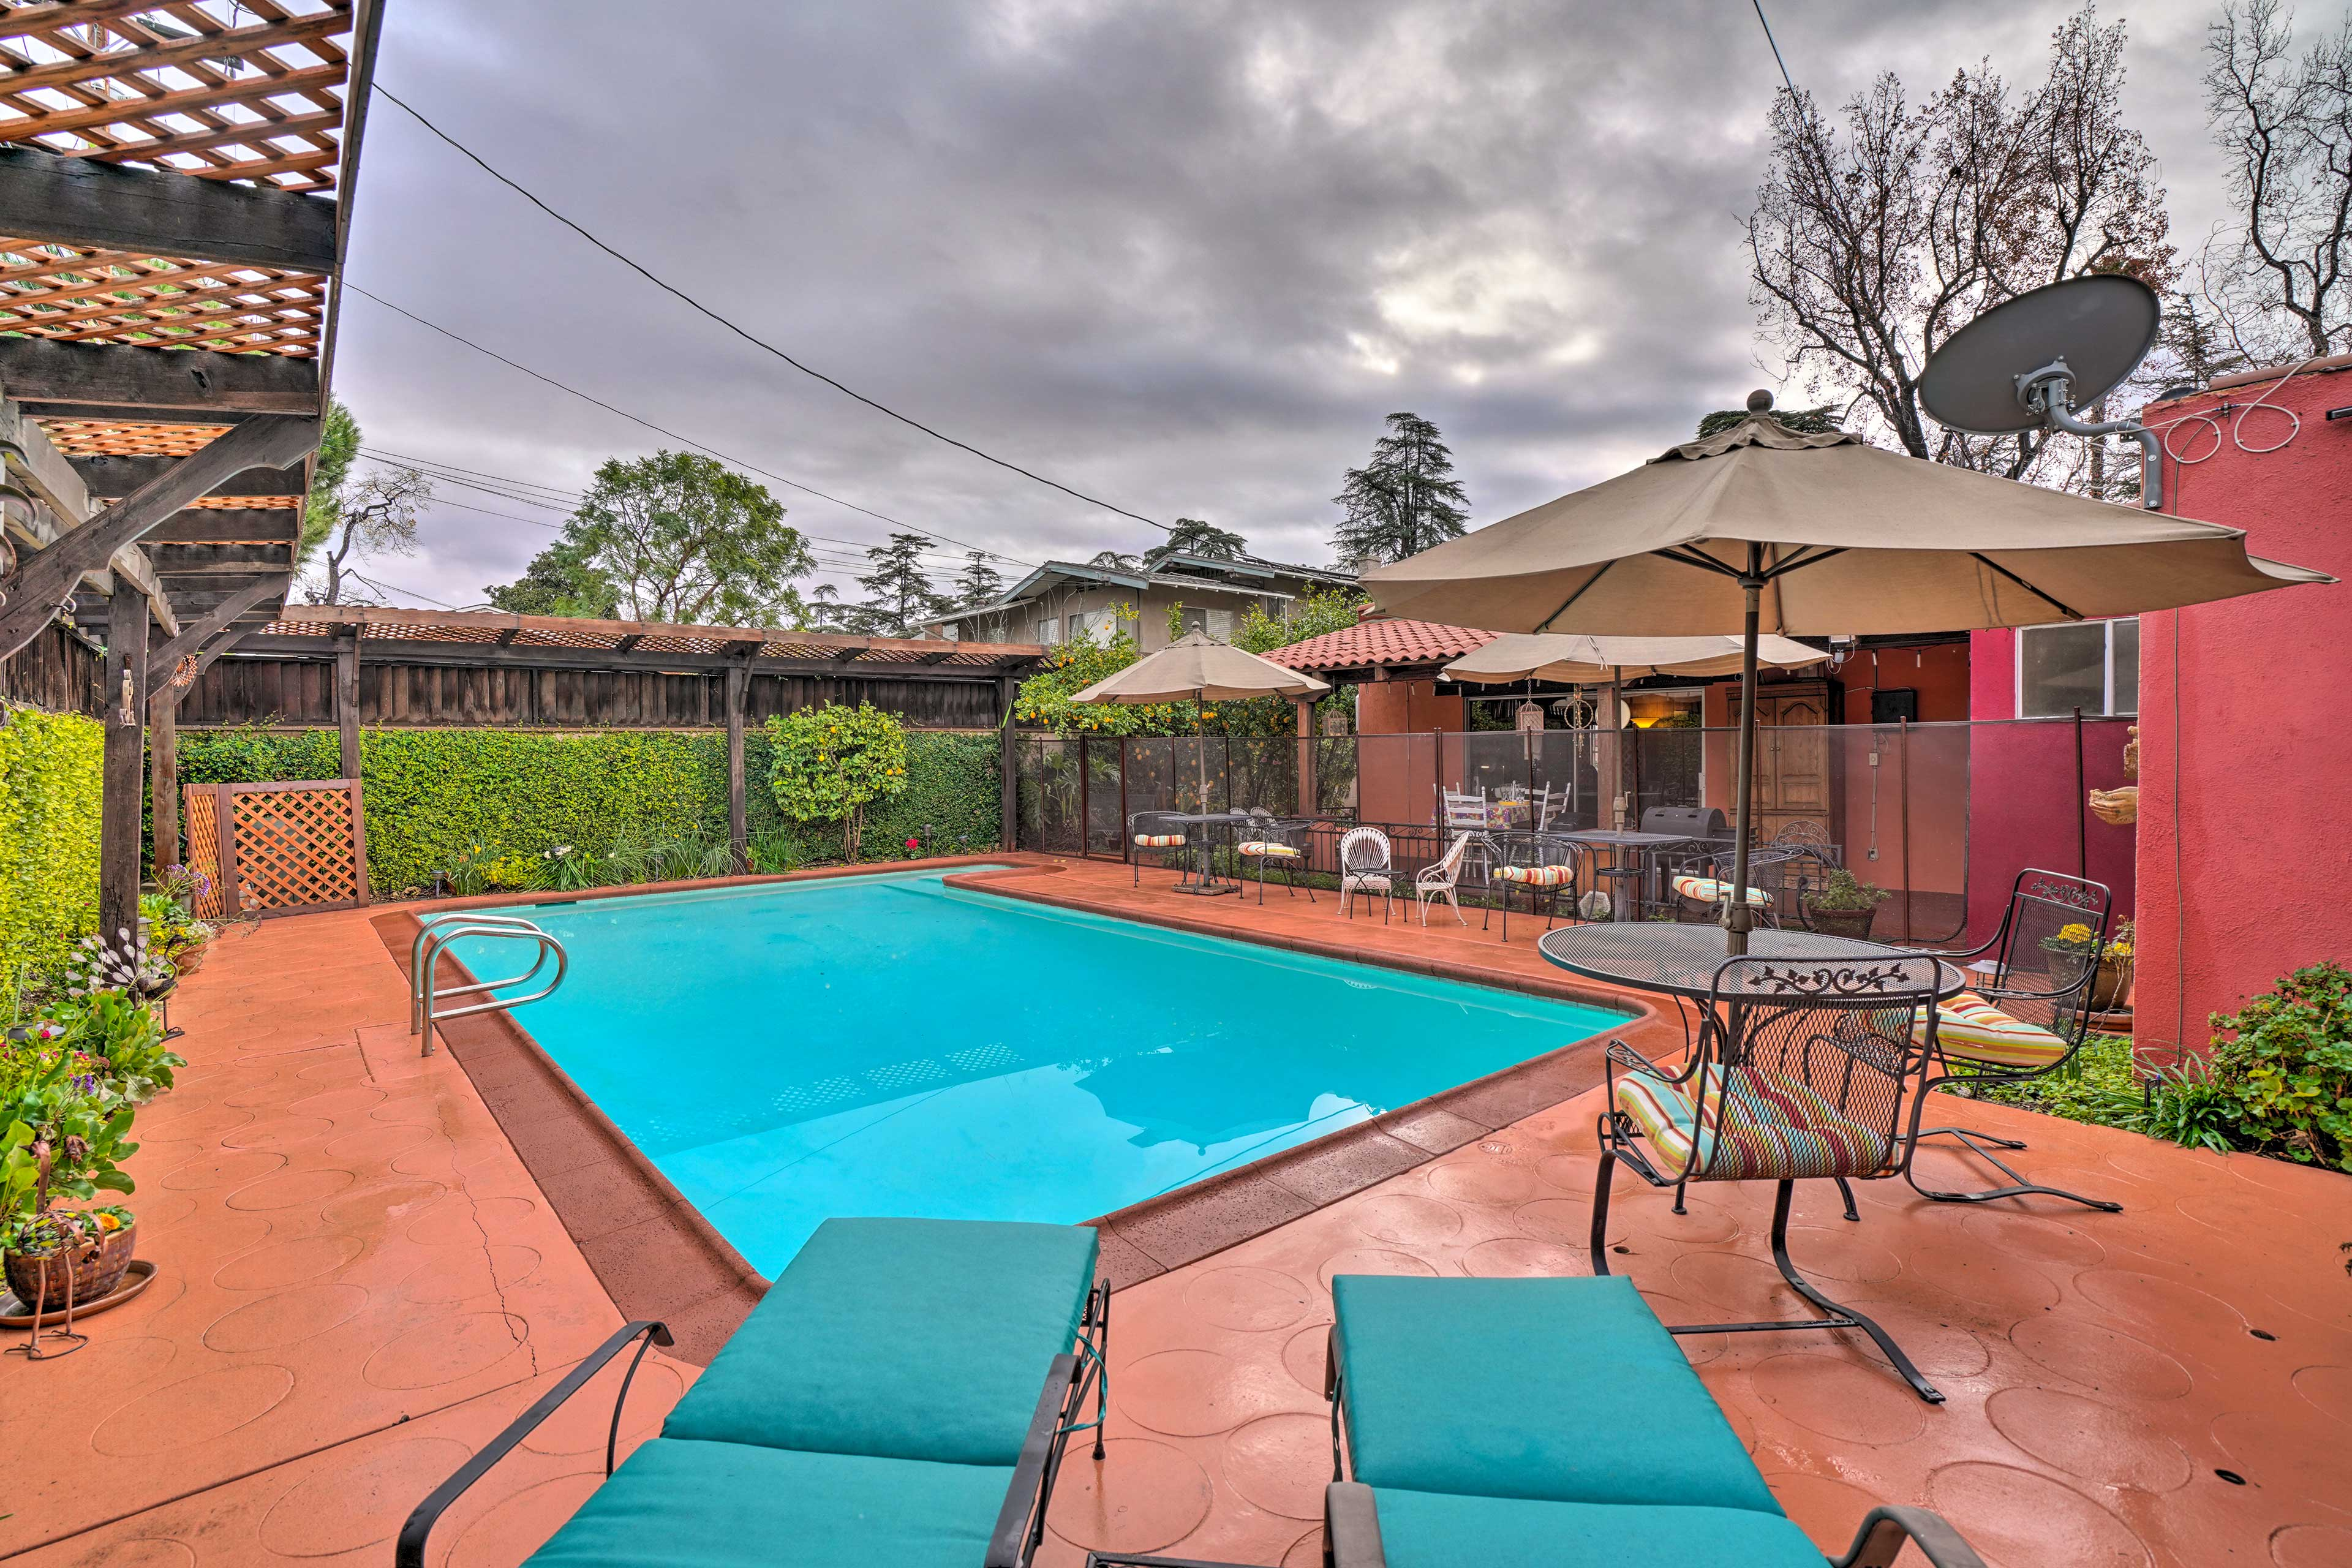 This private patio area offers a swimming pool, lounge chairs, and ample seating